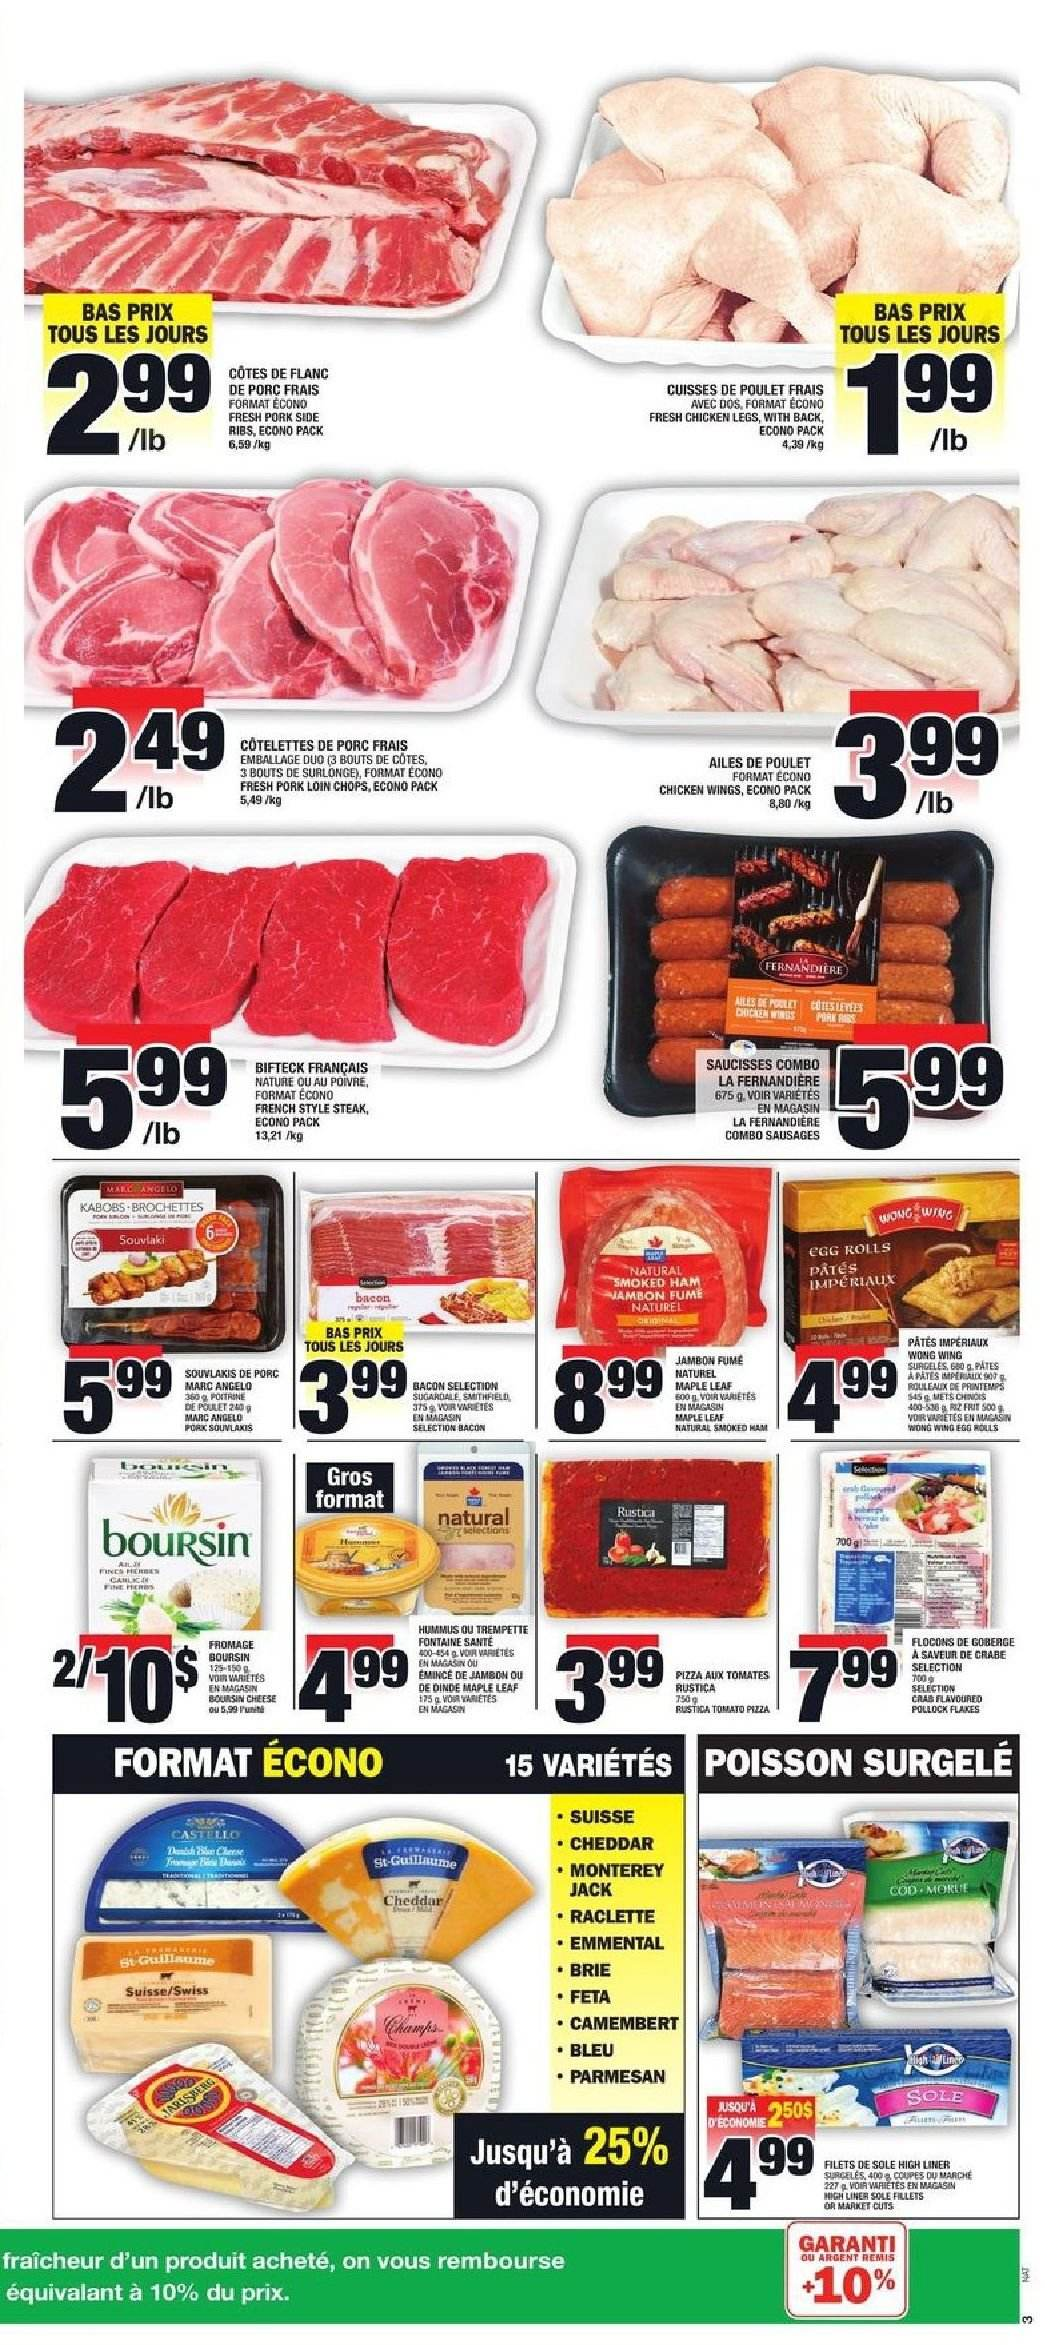 Super C Flyer - January 31, 2019 - February 06, 2019 - Sales products - bacon, brie, camembert, raclette cheese, sausages, sole, ham, hummus, pizza, pollock, pork loin, pork meat, cheddar, chicken, chicken legs, parmesan, chicken wings, steak, cheese, smoked ham, flakes, ribs, tomates, poulet, emmental, porc, dinde, jambon, boursin, crabe, fromage, mam, saucisse, raclette, pâtes, egg. Page 3.